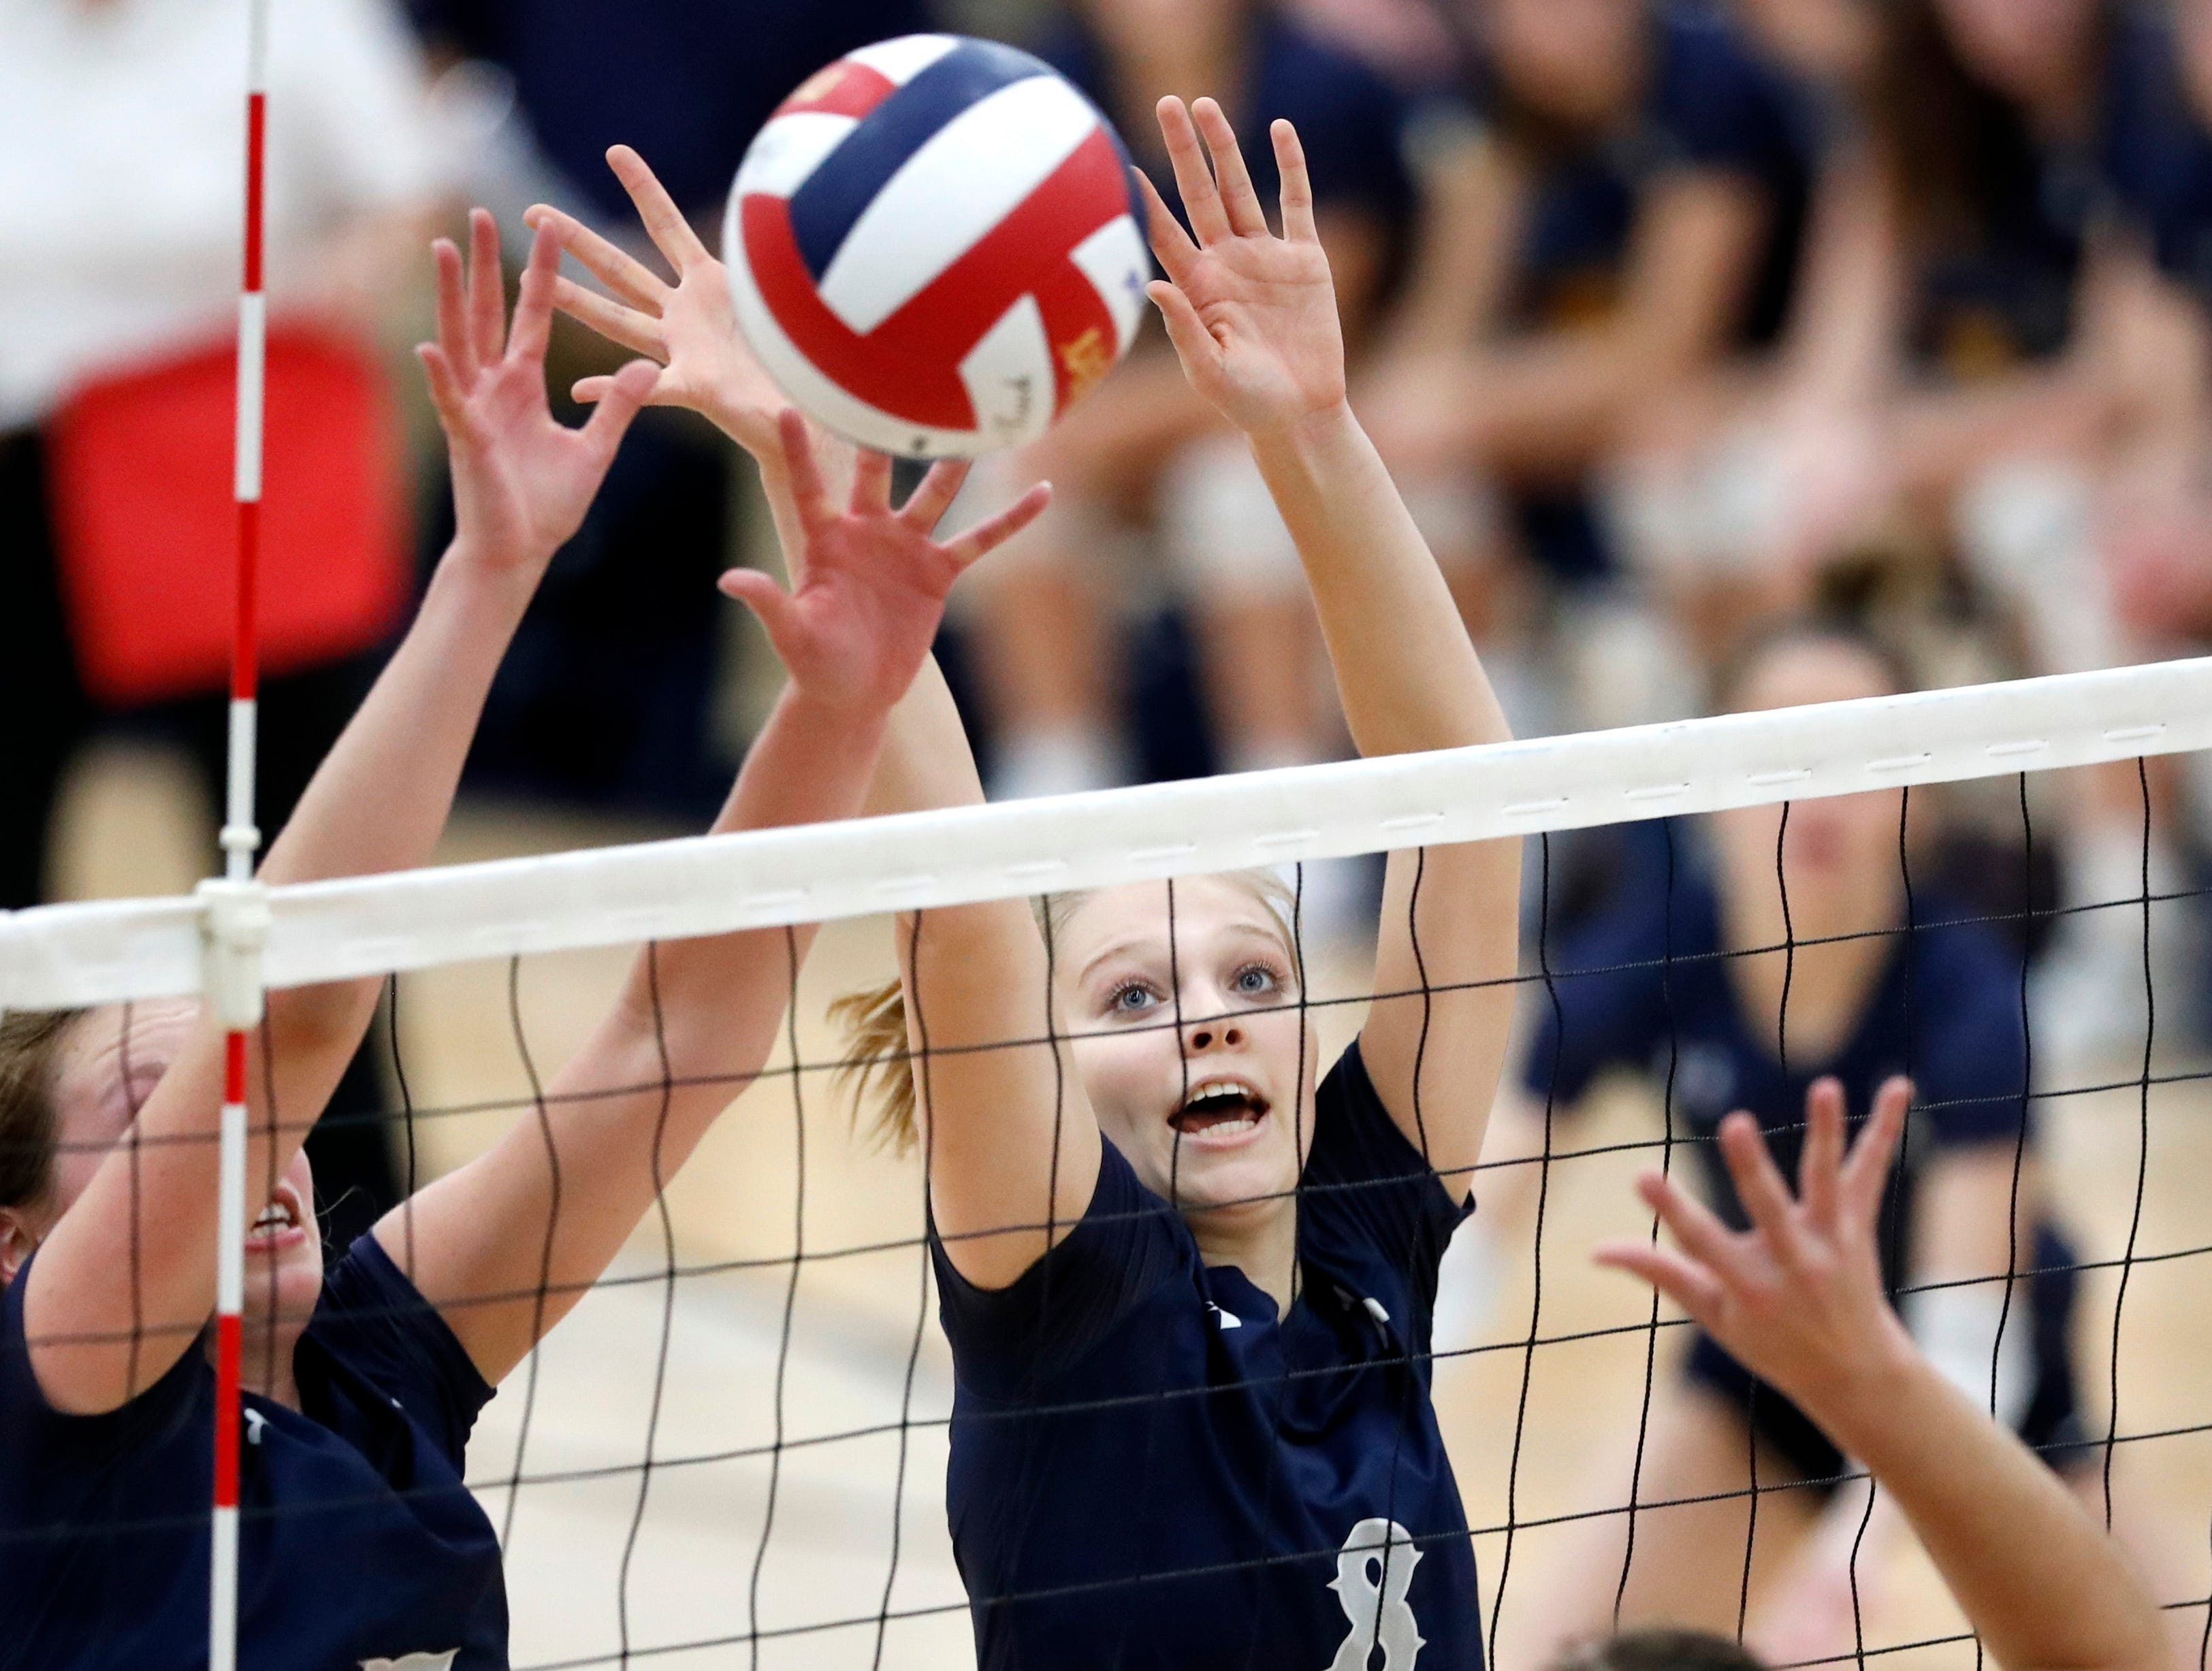 Xavier High SchoolÕs Emma Vosters and Xavier High SchoolÕs Morgan Michalkiewicz try to block a shot from Little Chute High School during their Division 2 semifinal match Thursday, Oct. 25, 2018, in Chilton, Wis.Danny Damiani/USA TODAY NETWORK-Wisconsin